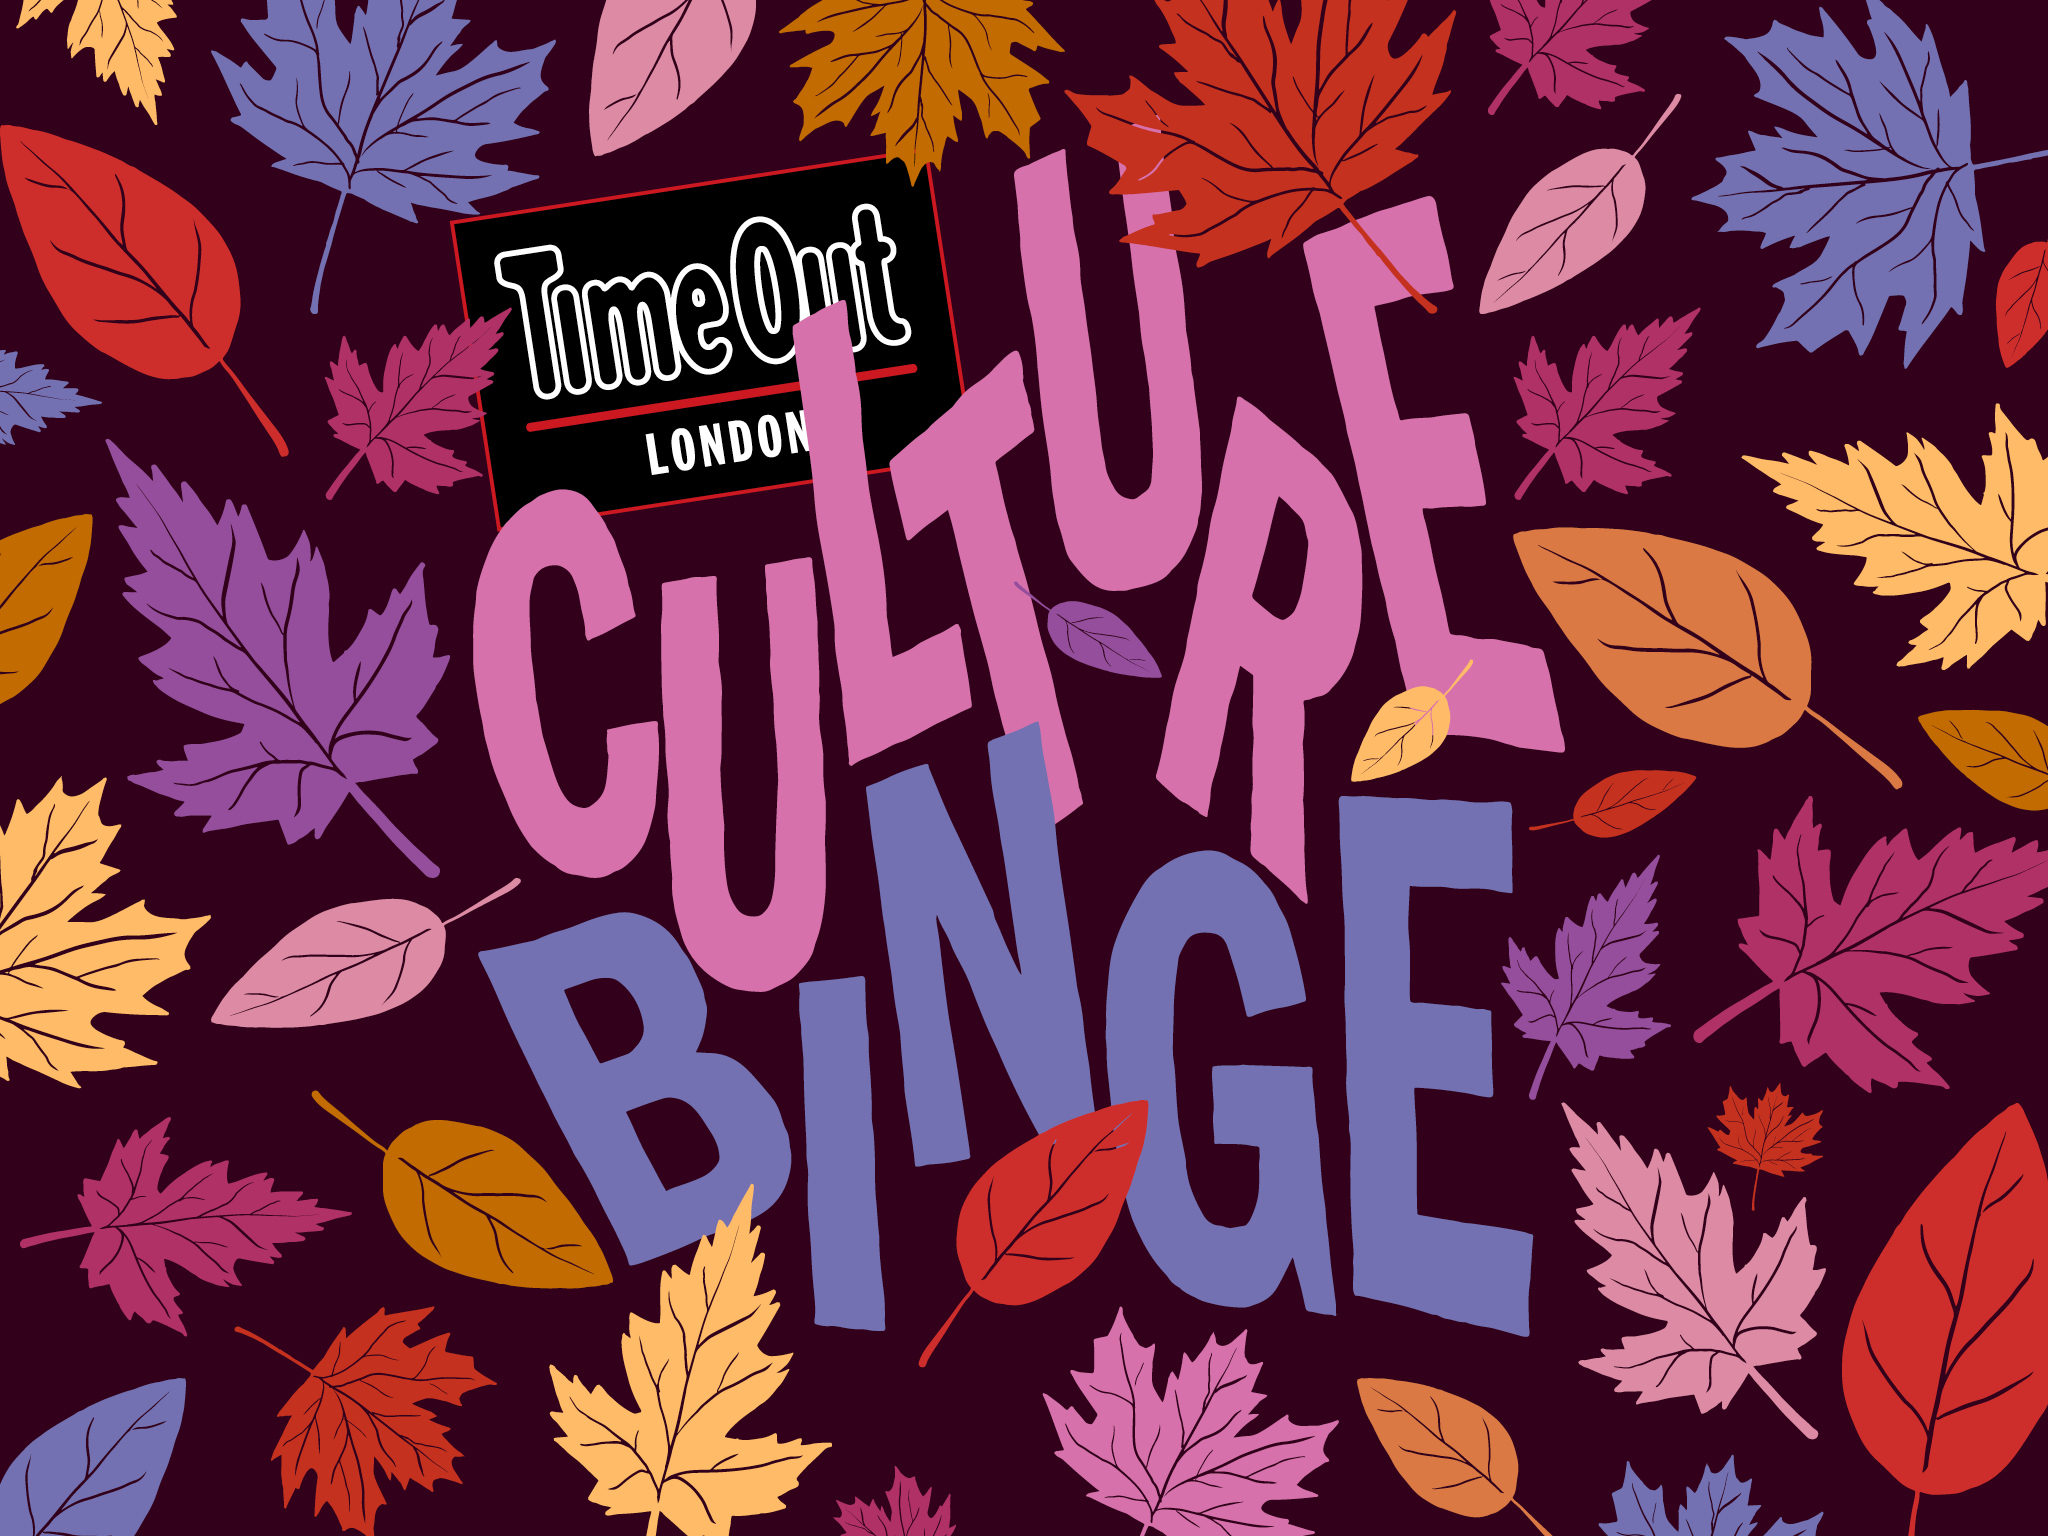 time out magazine culture binge cover